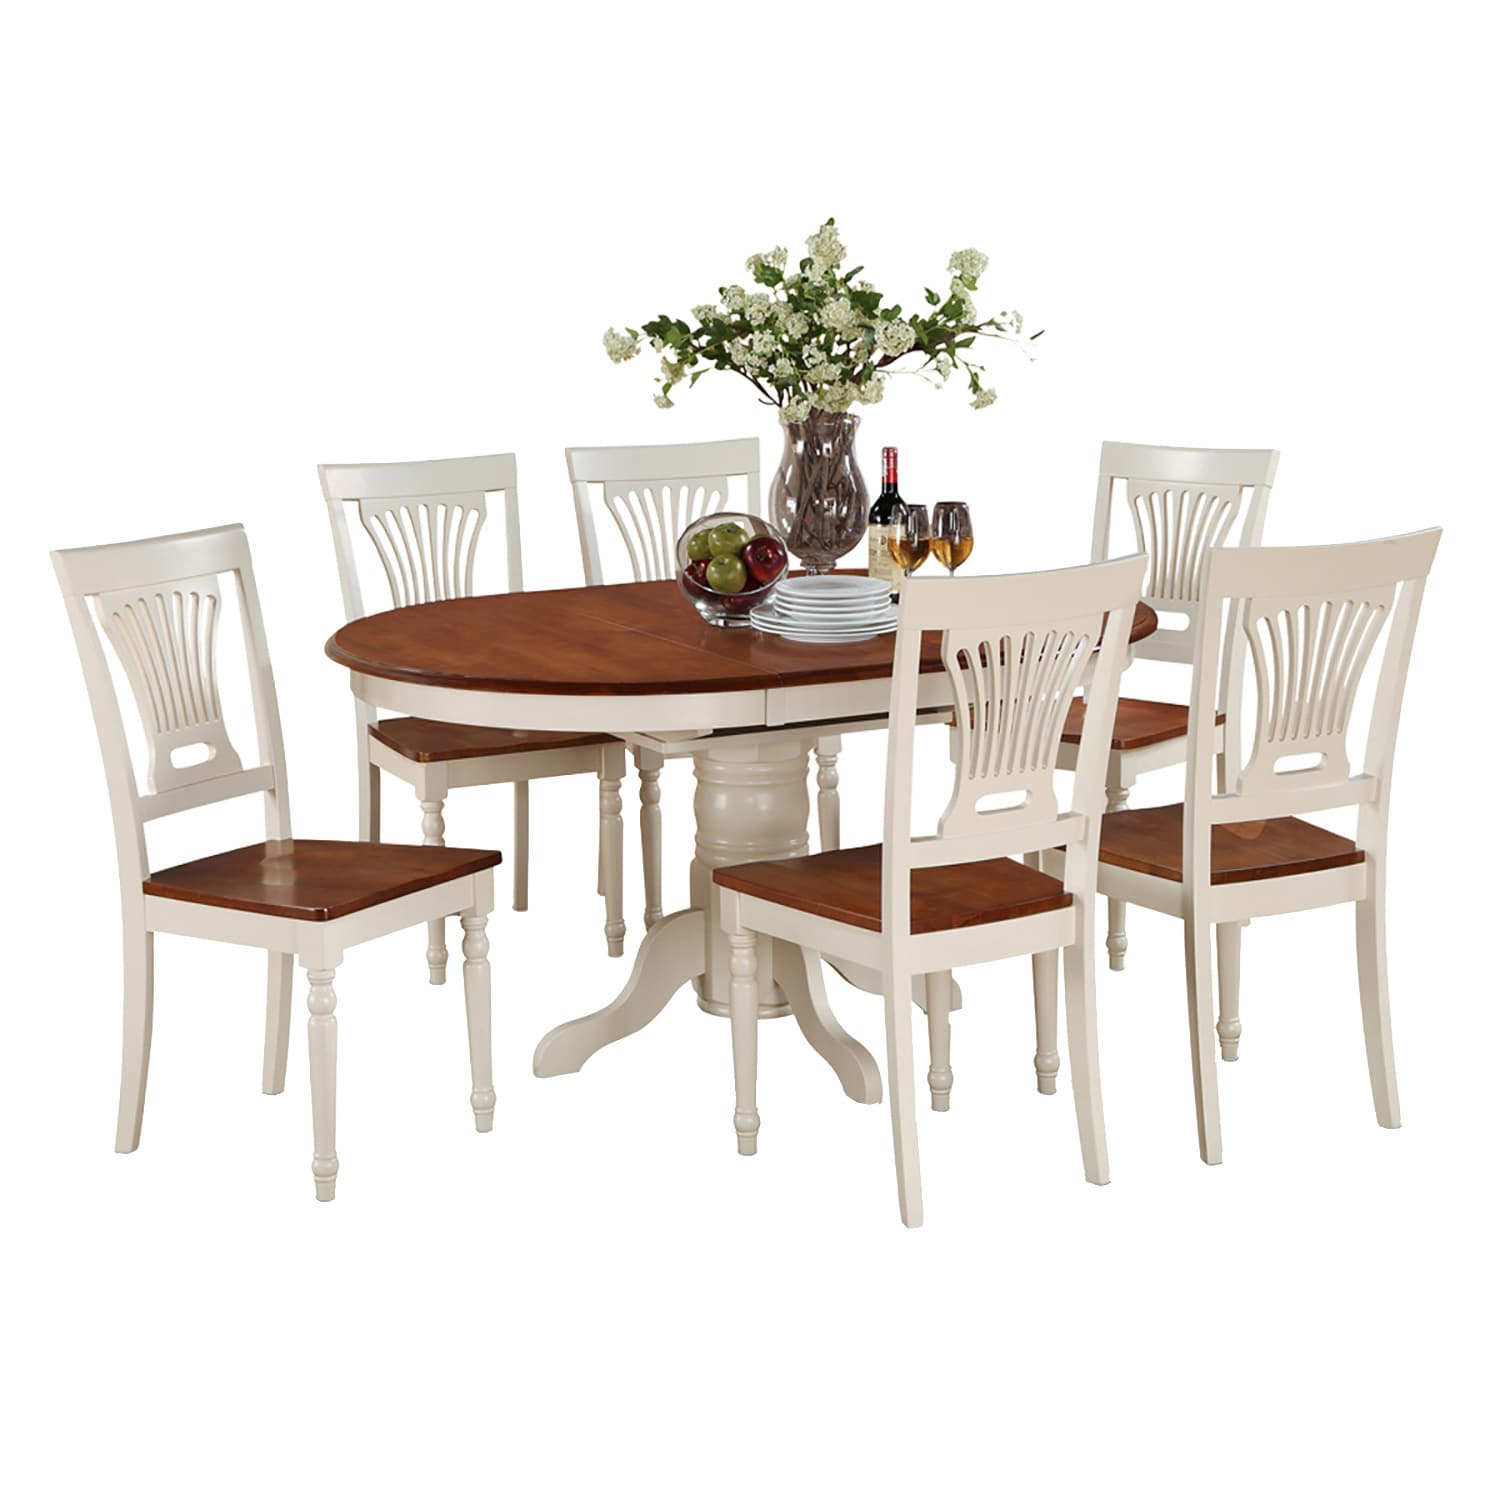 7-piece Oval Table with Leaf and 6 Dining Chairs (Butterm...